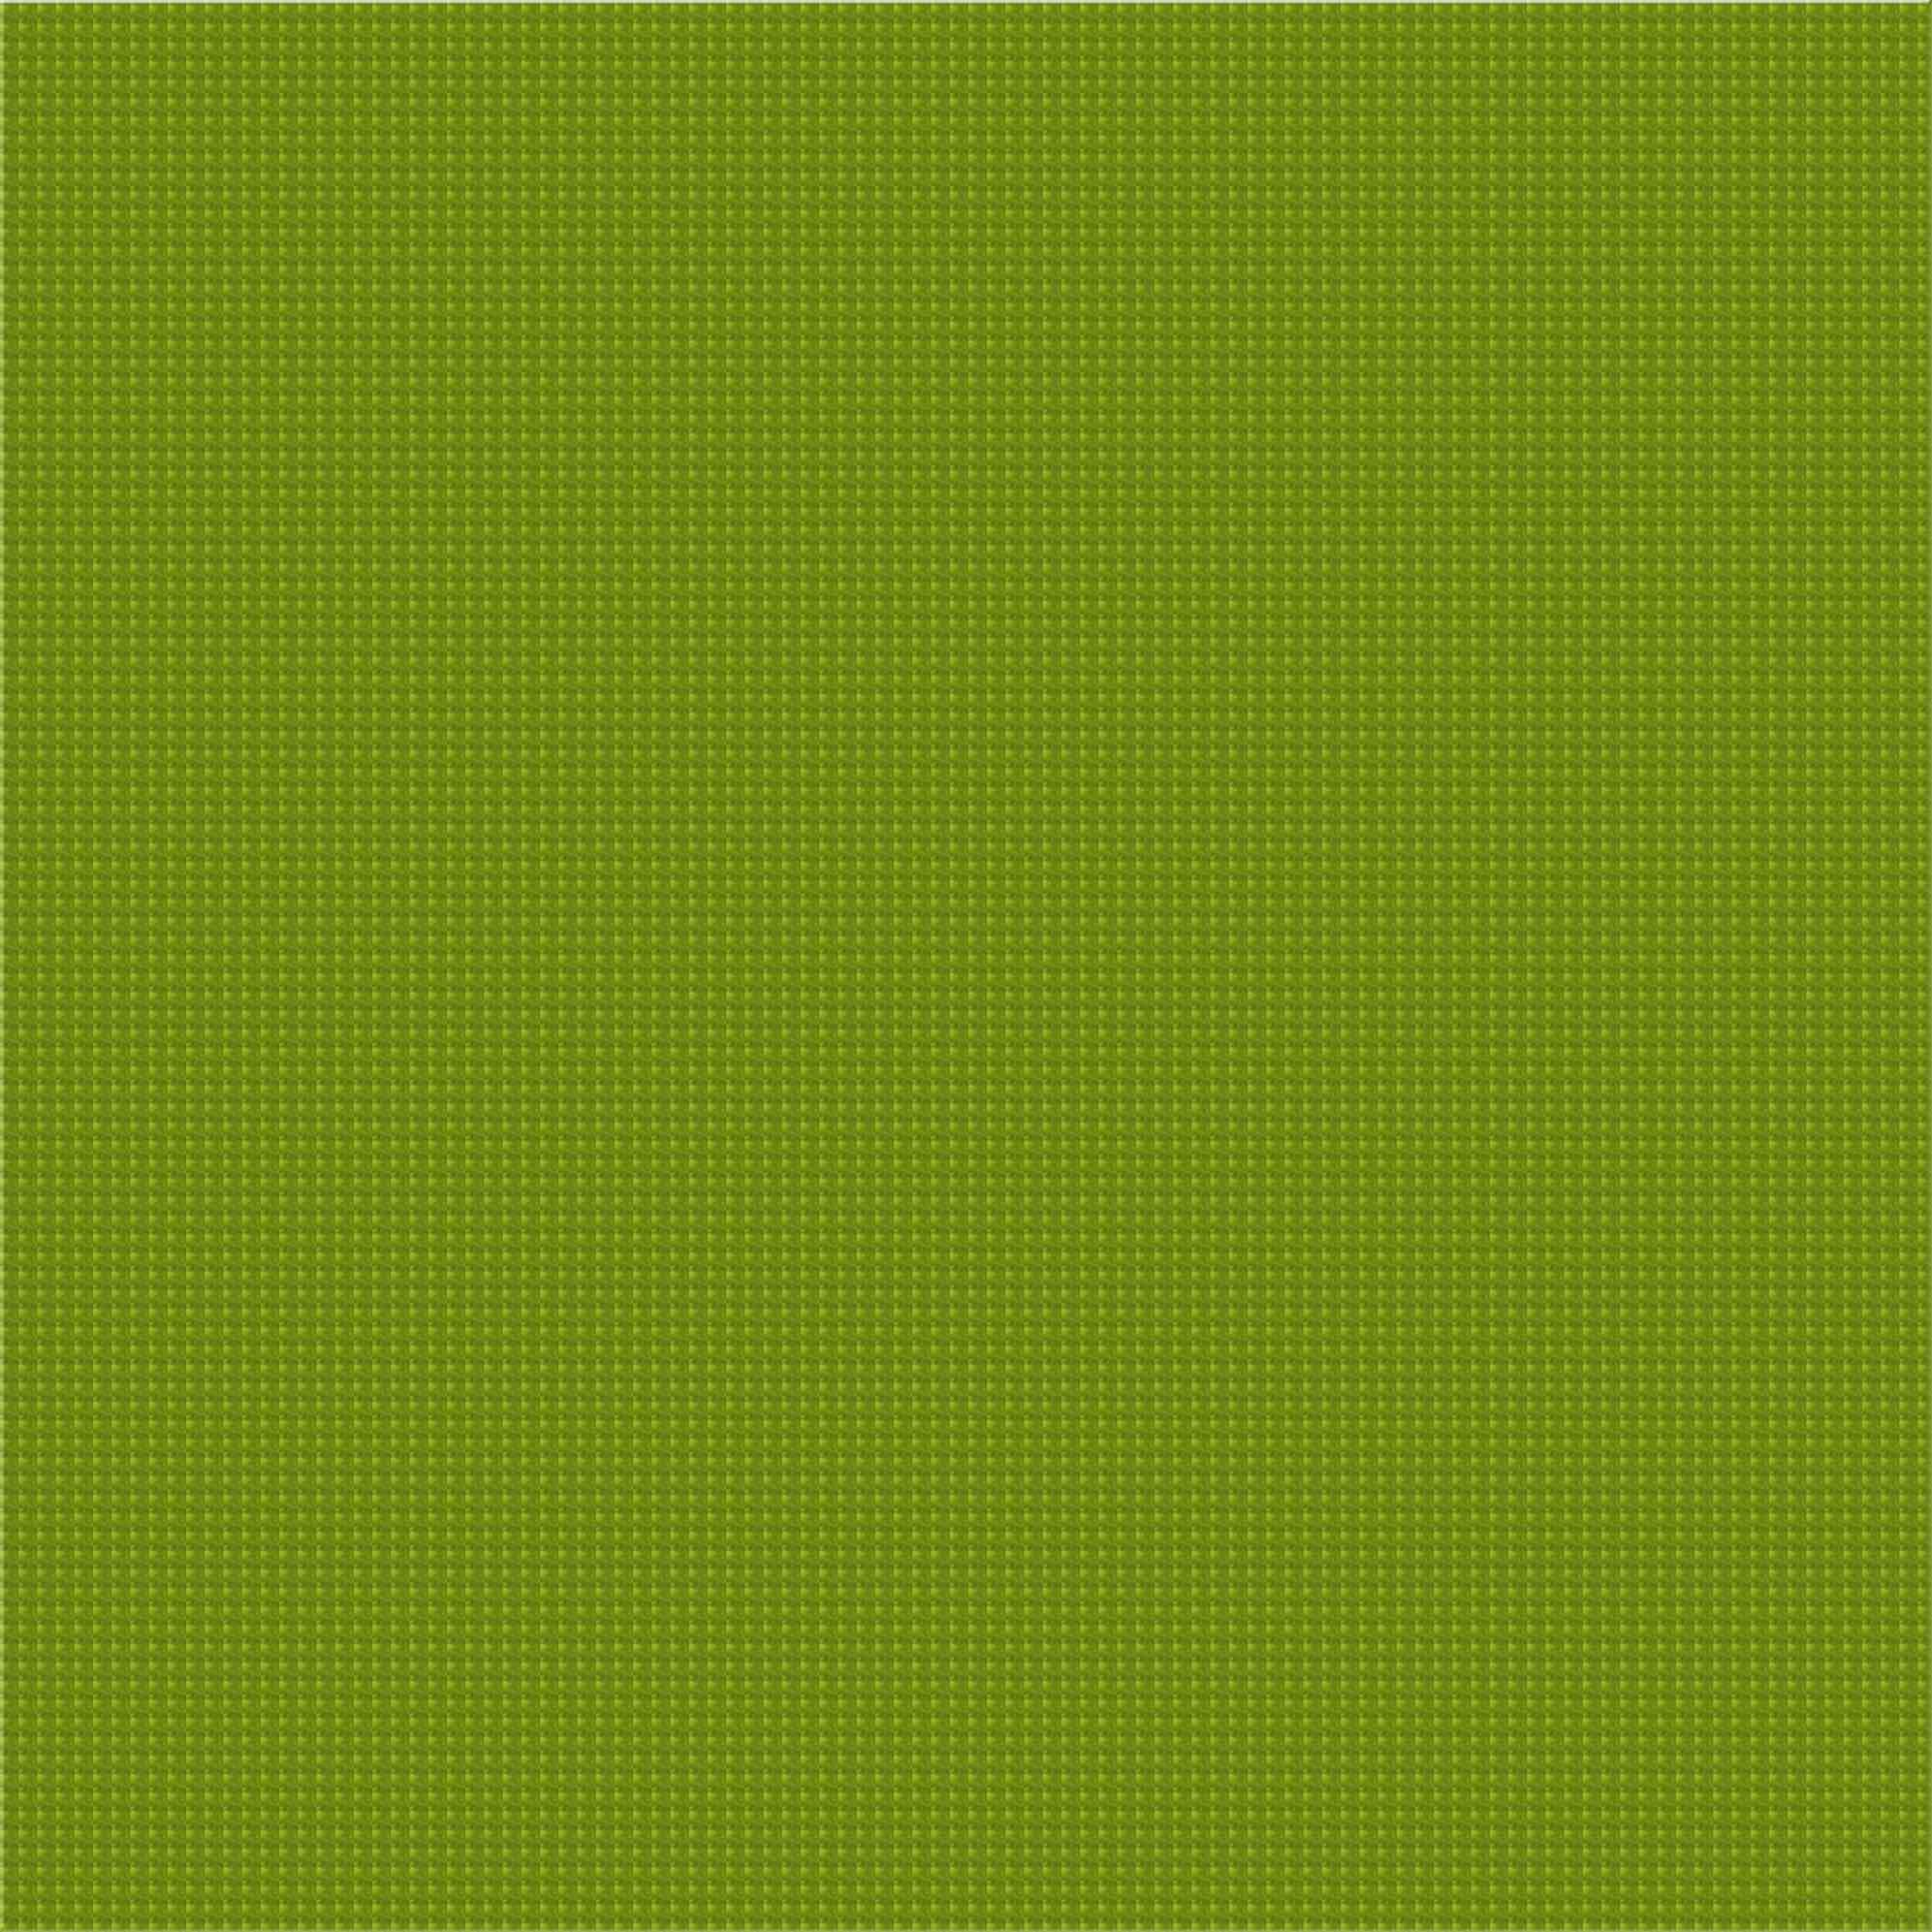 Image Title Apple Green